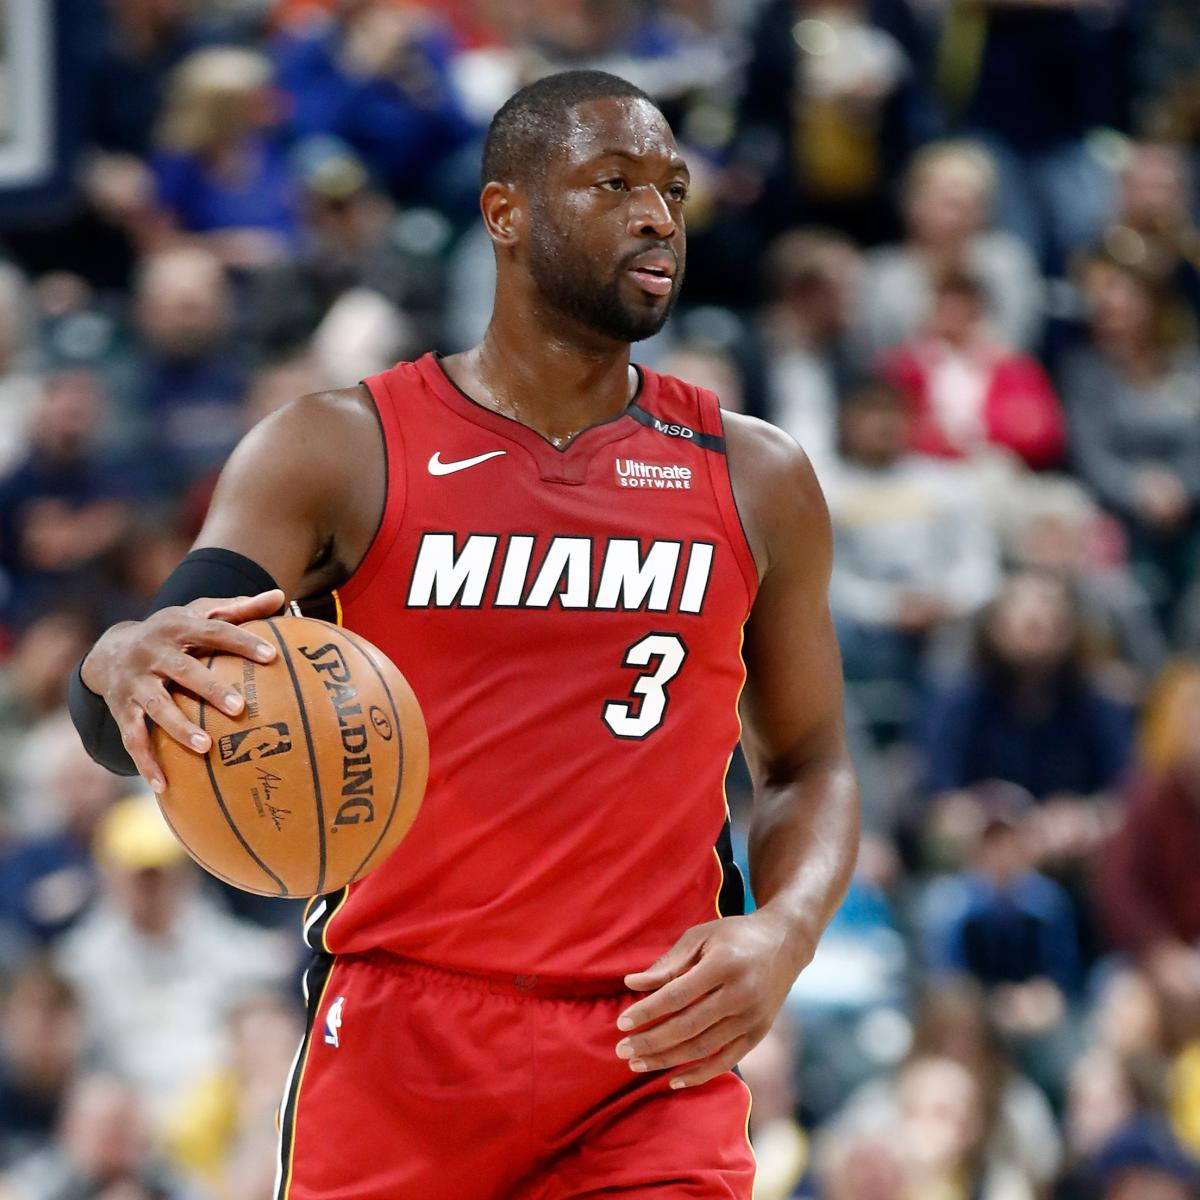 dwyane wade vs lebron james Not only are dwyane wade and lebron james the two best players on the miami heat , but they are both, arguably, the two best players in the entire league.